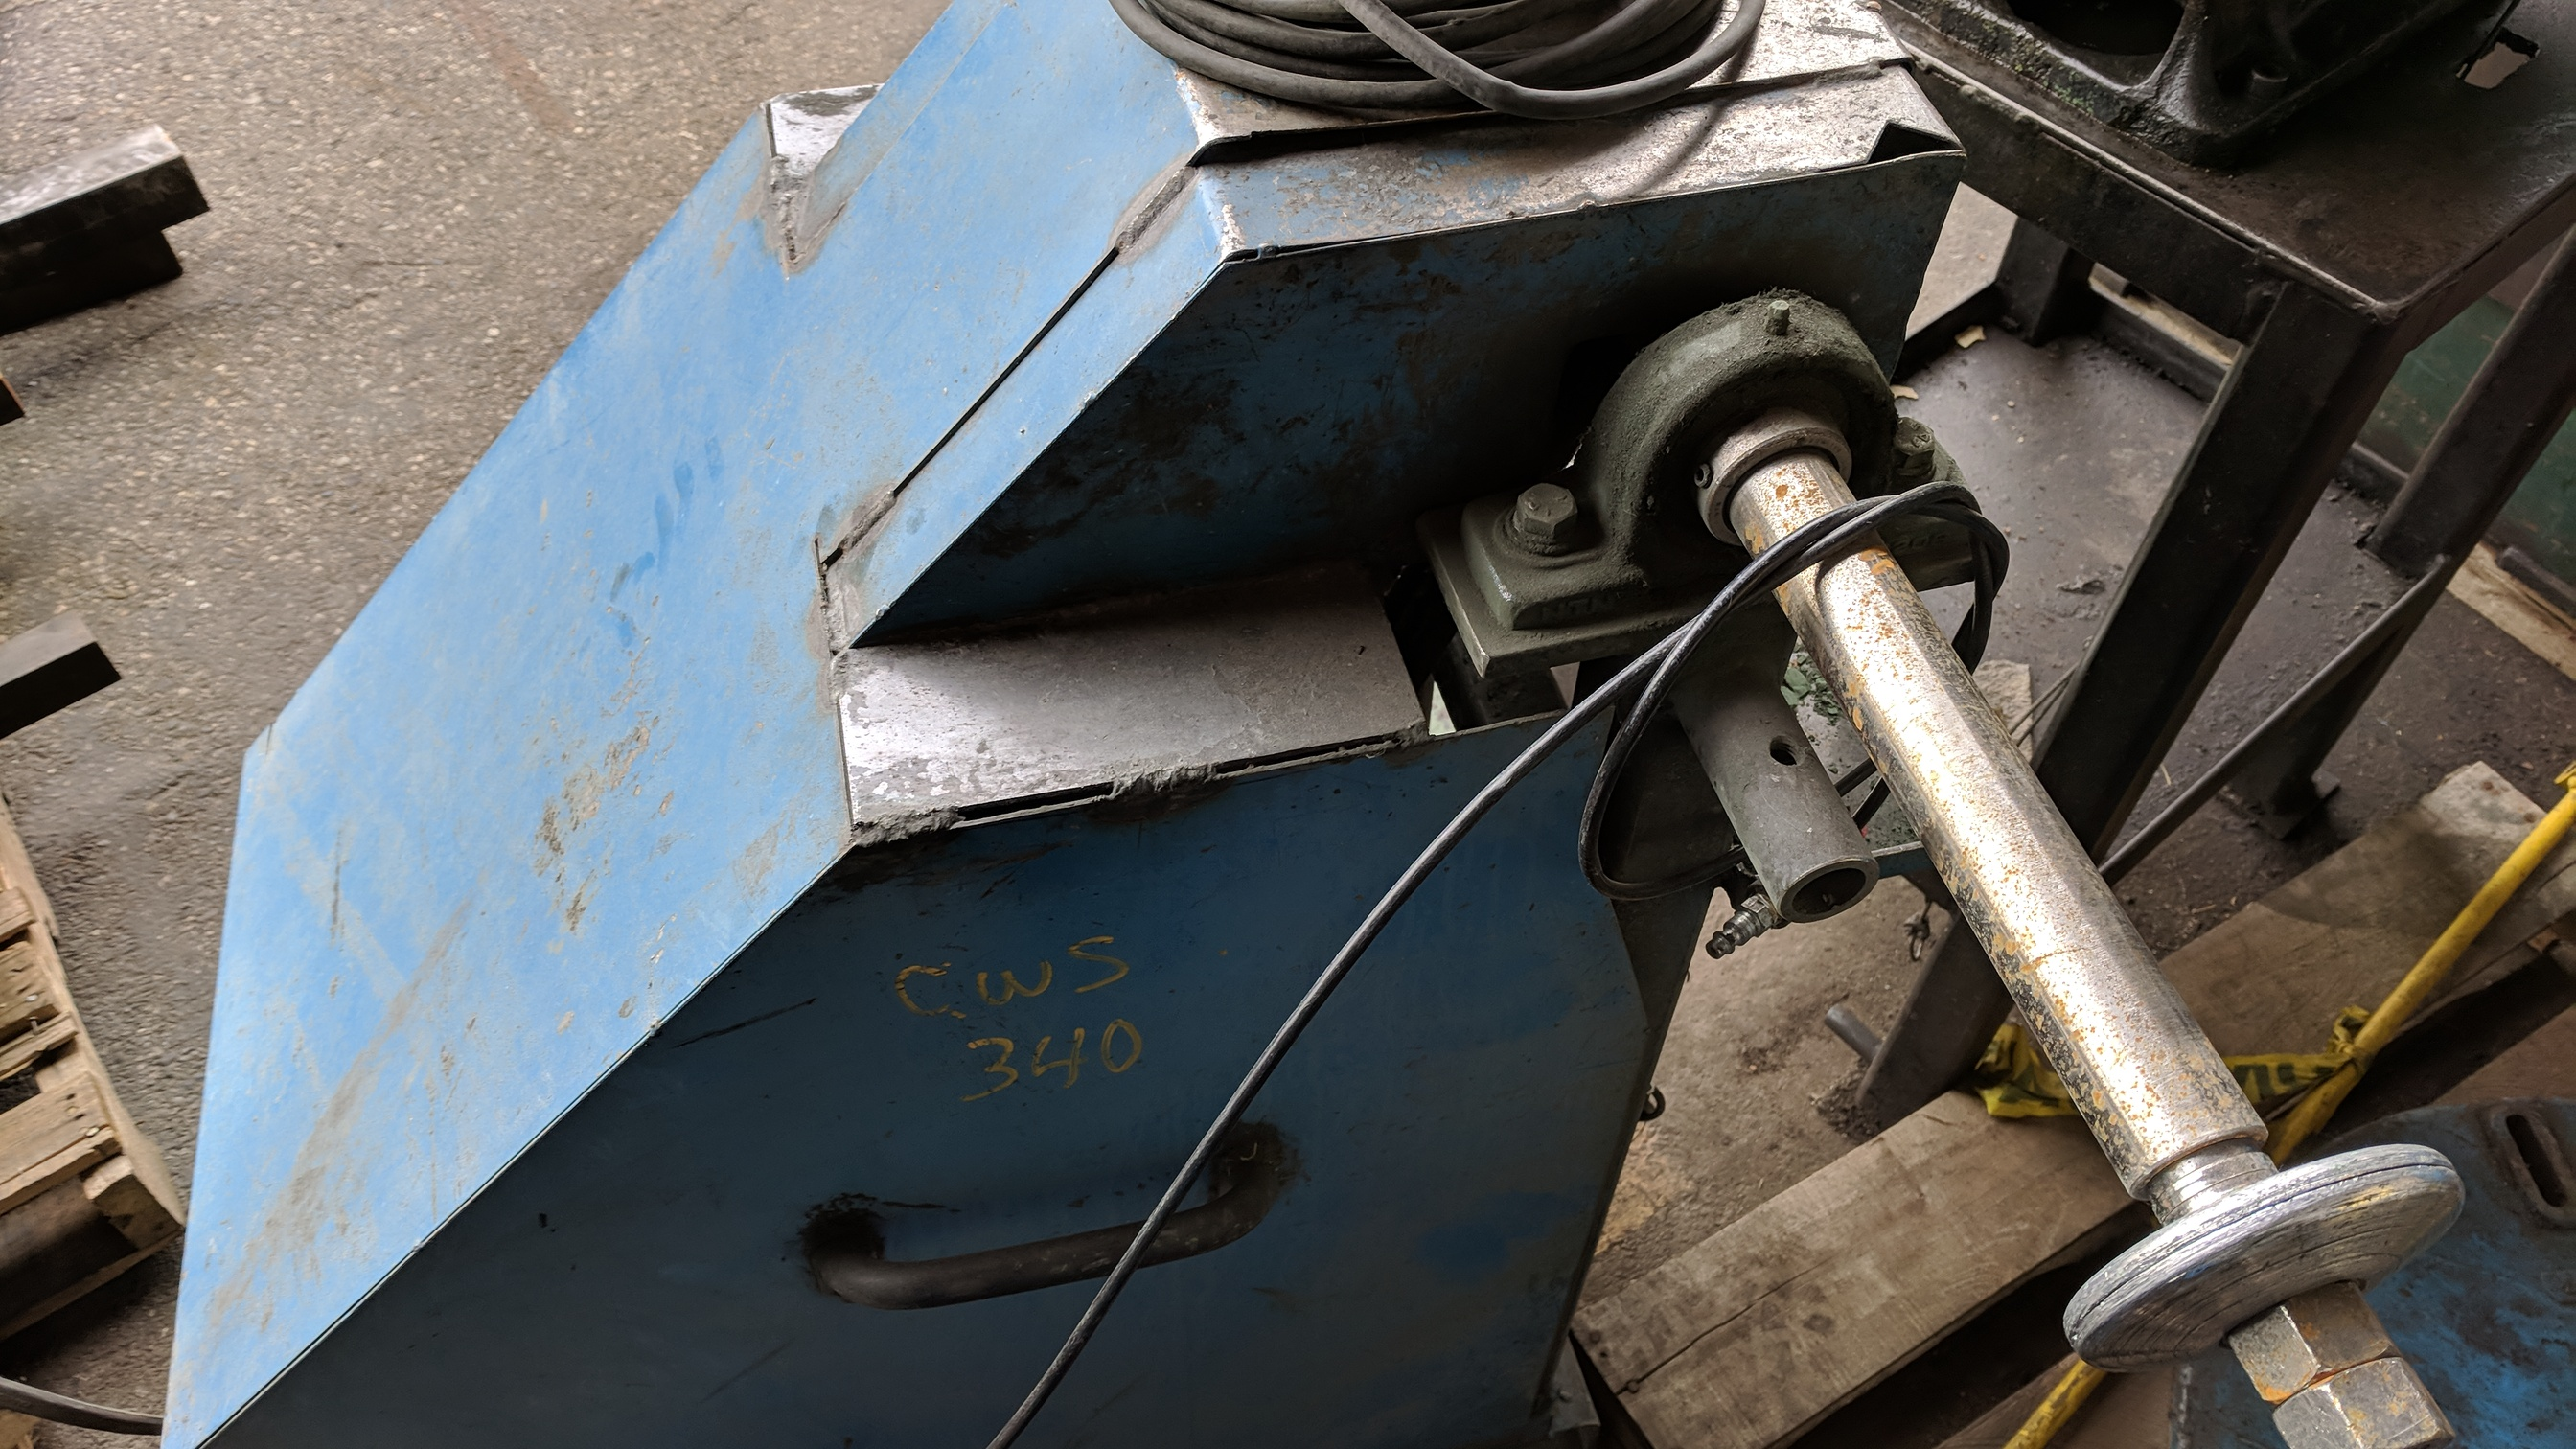 CROWN HEAVY DUTY FLOOR TYPE DOUBLE END BUFFER POLISHER WITH 10 HP, S/N N/A (CI) - Image 3 of 3